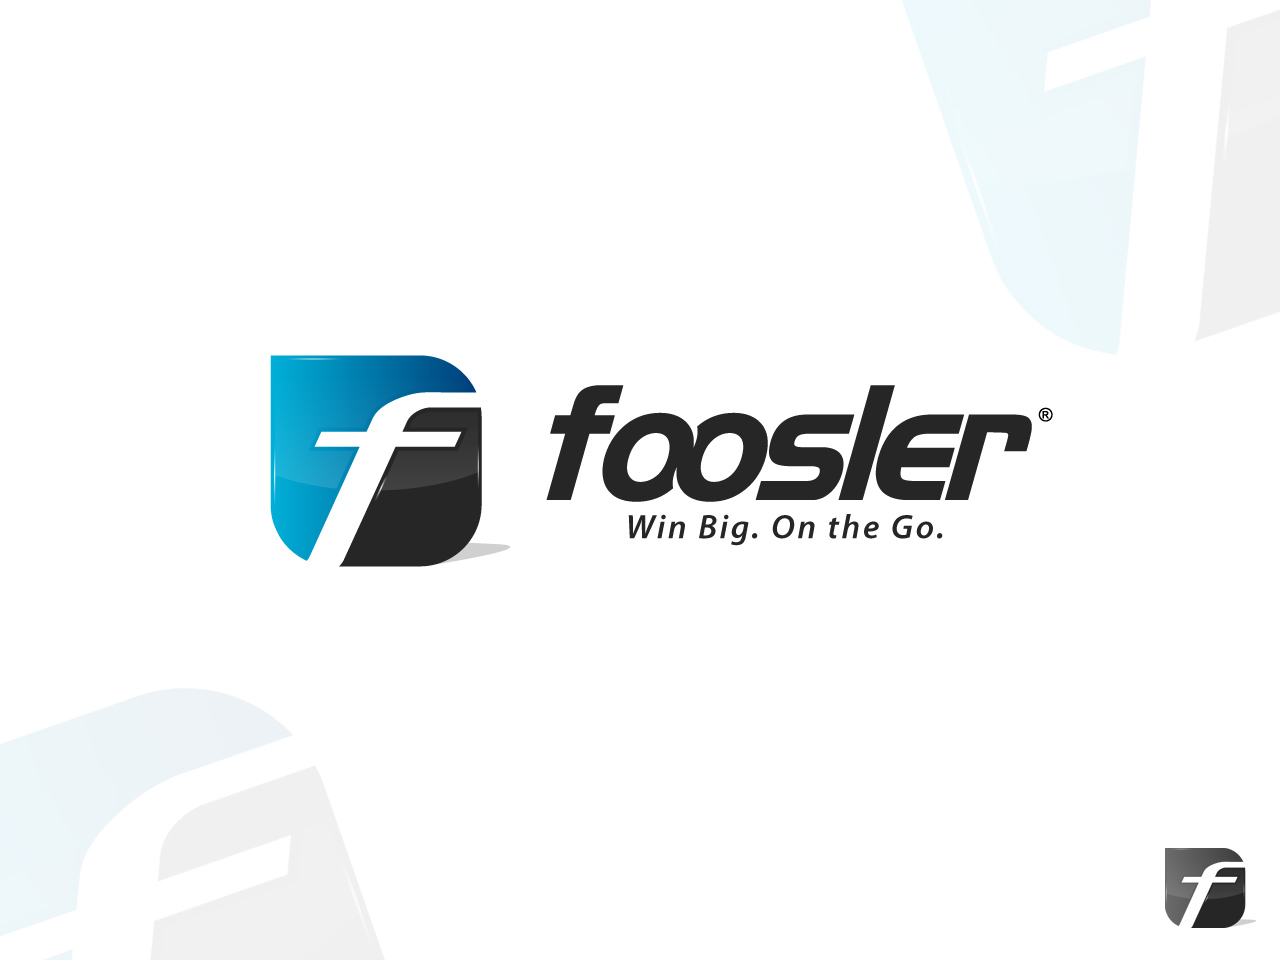 Logo Design by jpbituin - Entry No. 29 in the Logo Design Contest Foosler Logo Design.